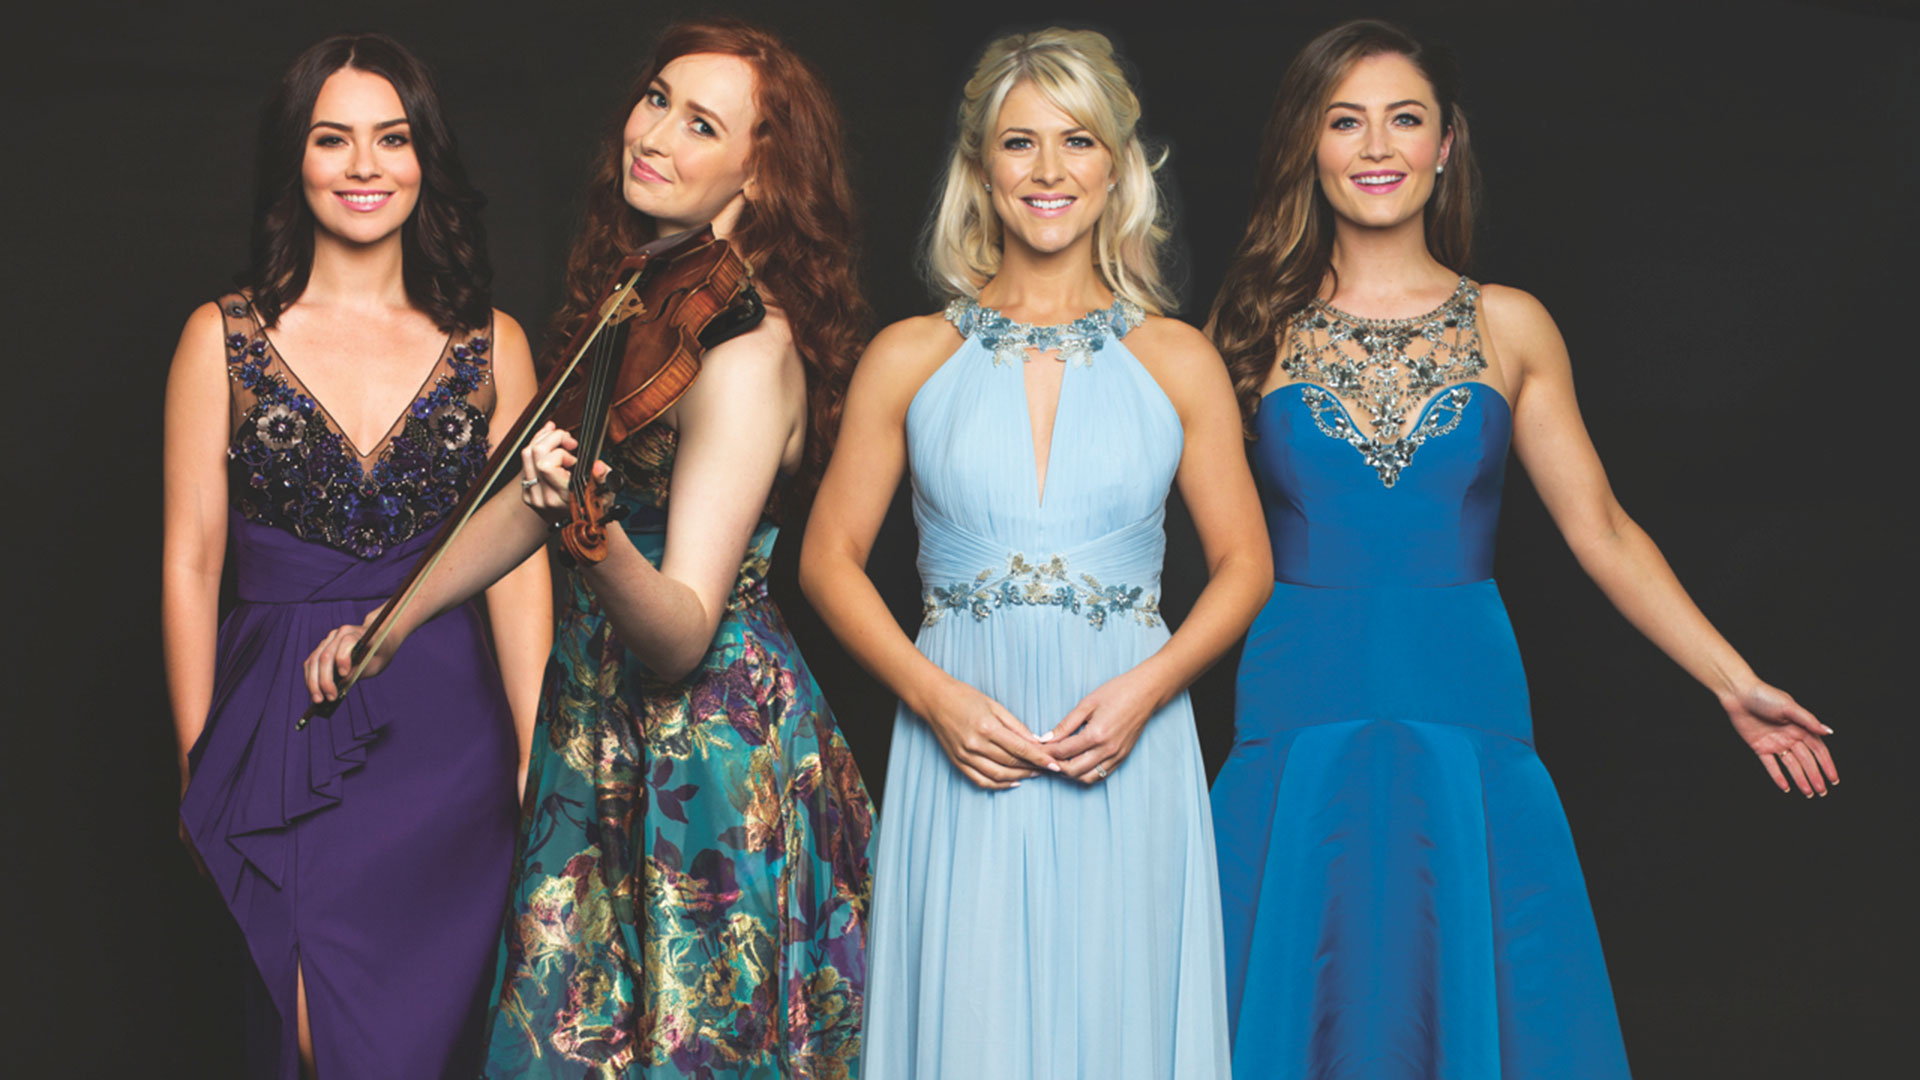 celtic women Celtic woman april 17, 7 pm in the dozen years since its 2005 debut, global musical sensation celtic woman has emerged as both a formidable multimedia presence and a genuine cultural phenomenon.